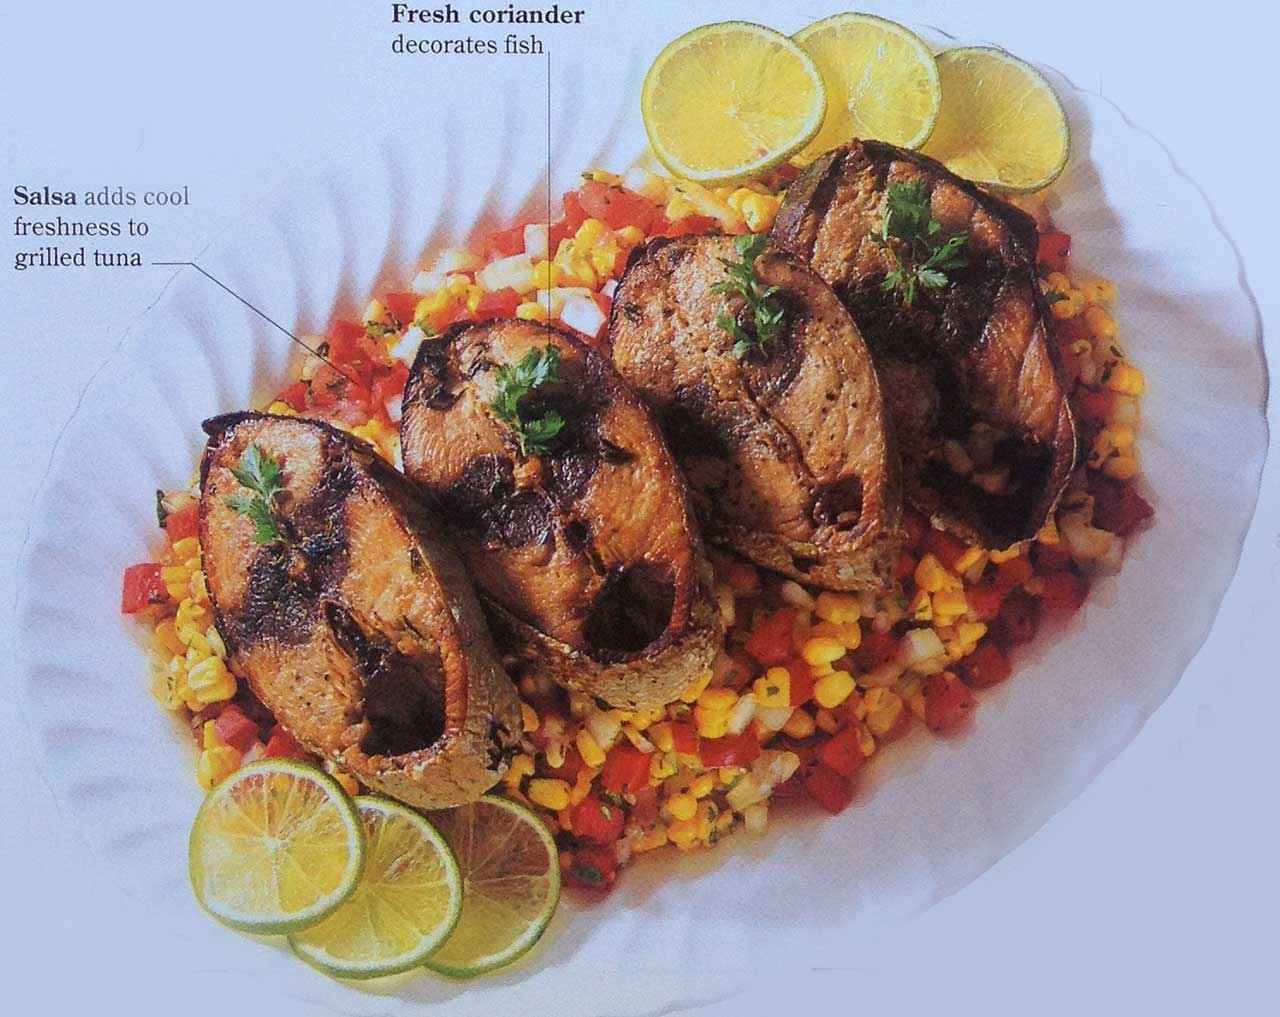 Arrange the tuna steaks on a bed of salsa on a platter and decorate each with a sprig of coriander